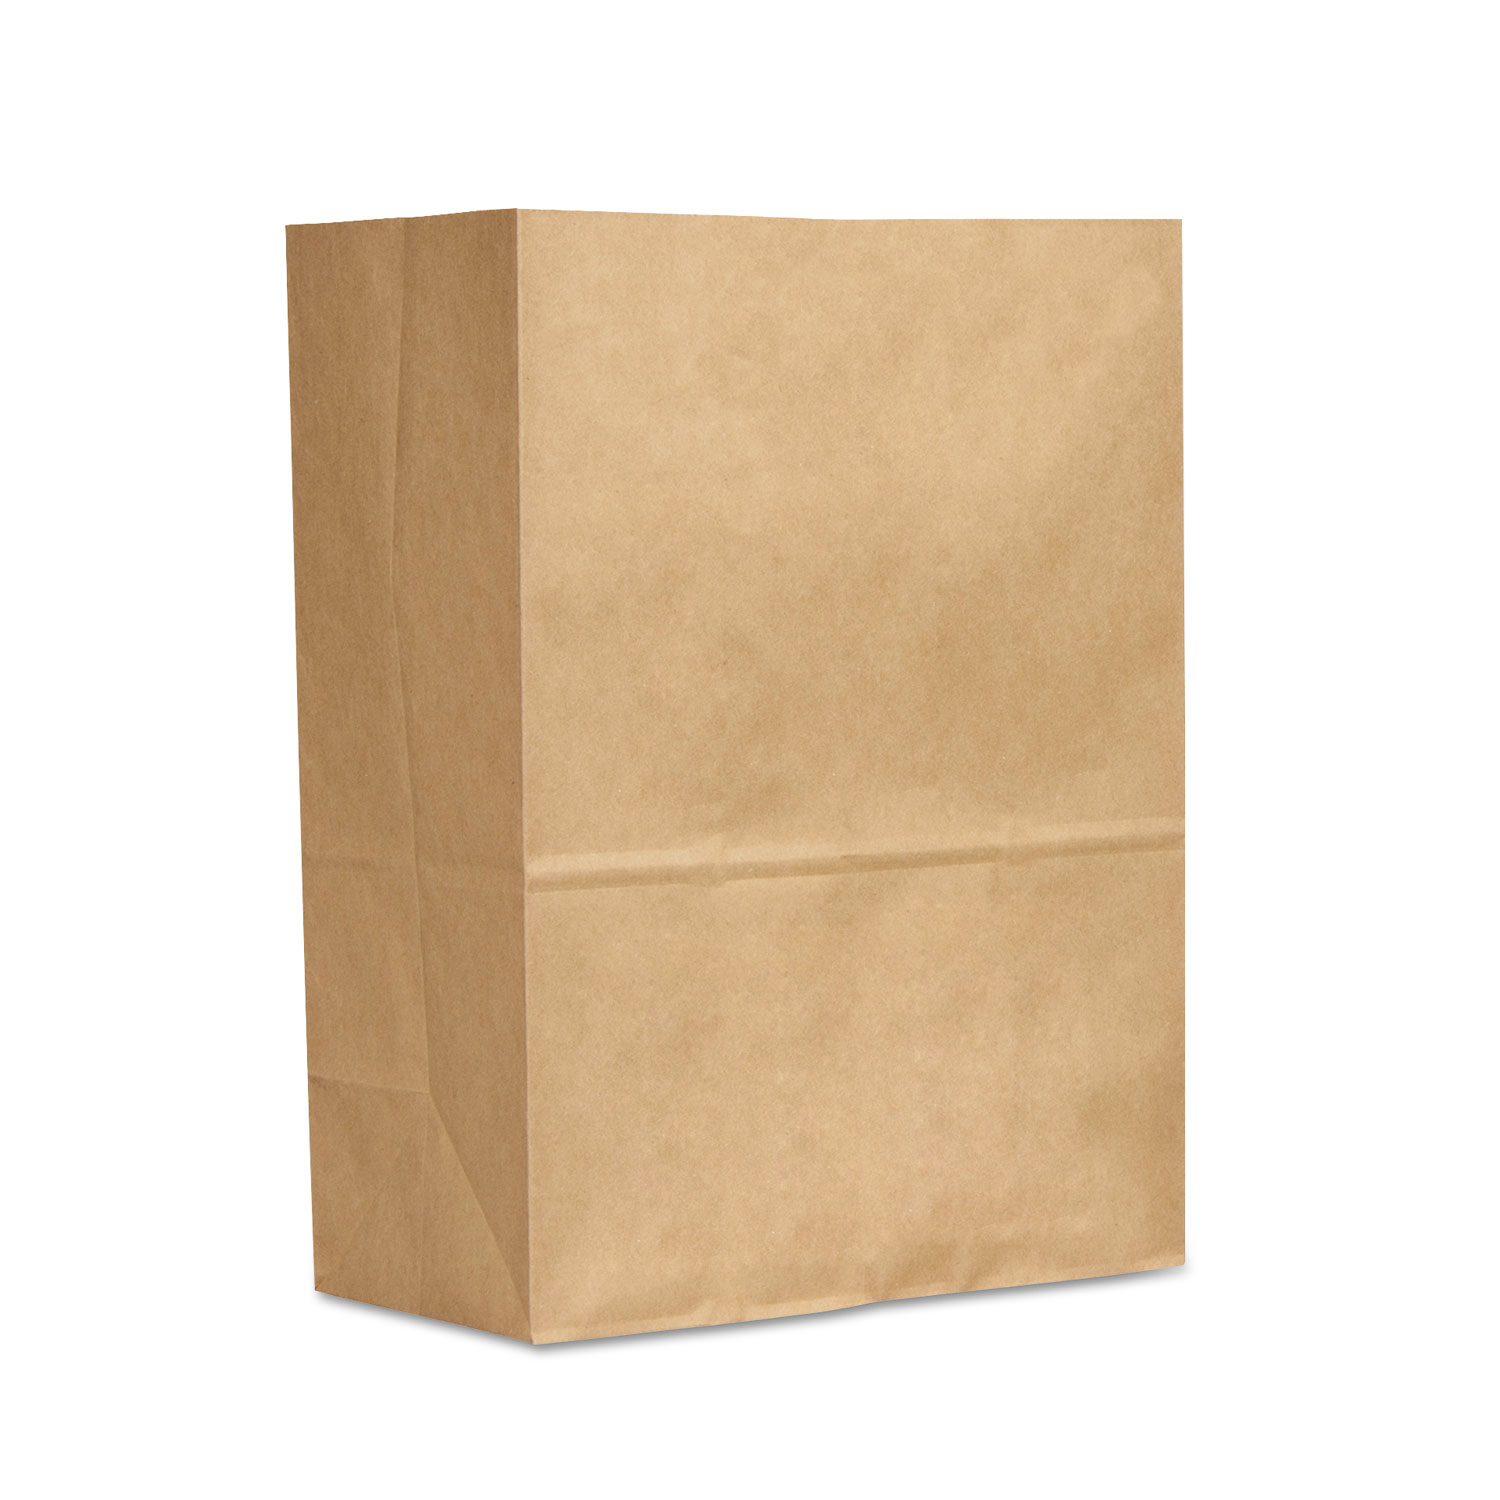 Brown Paper Bags With Handles Kmart 1 6 Bbl Paper Grocery Bag By General Bagsk1670ez300